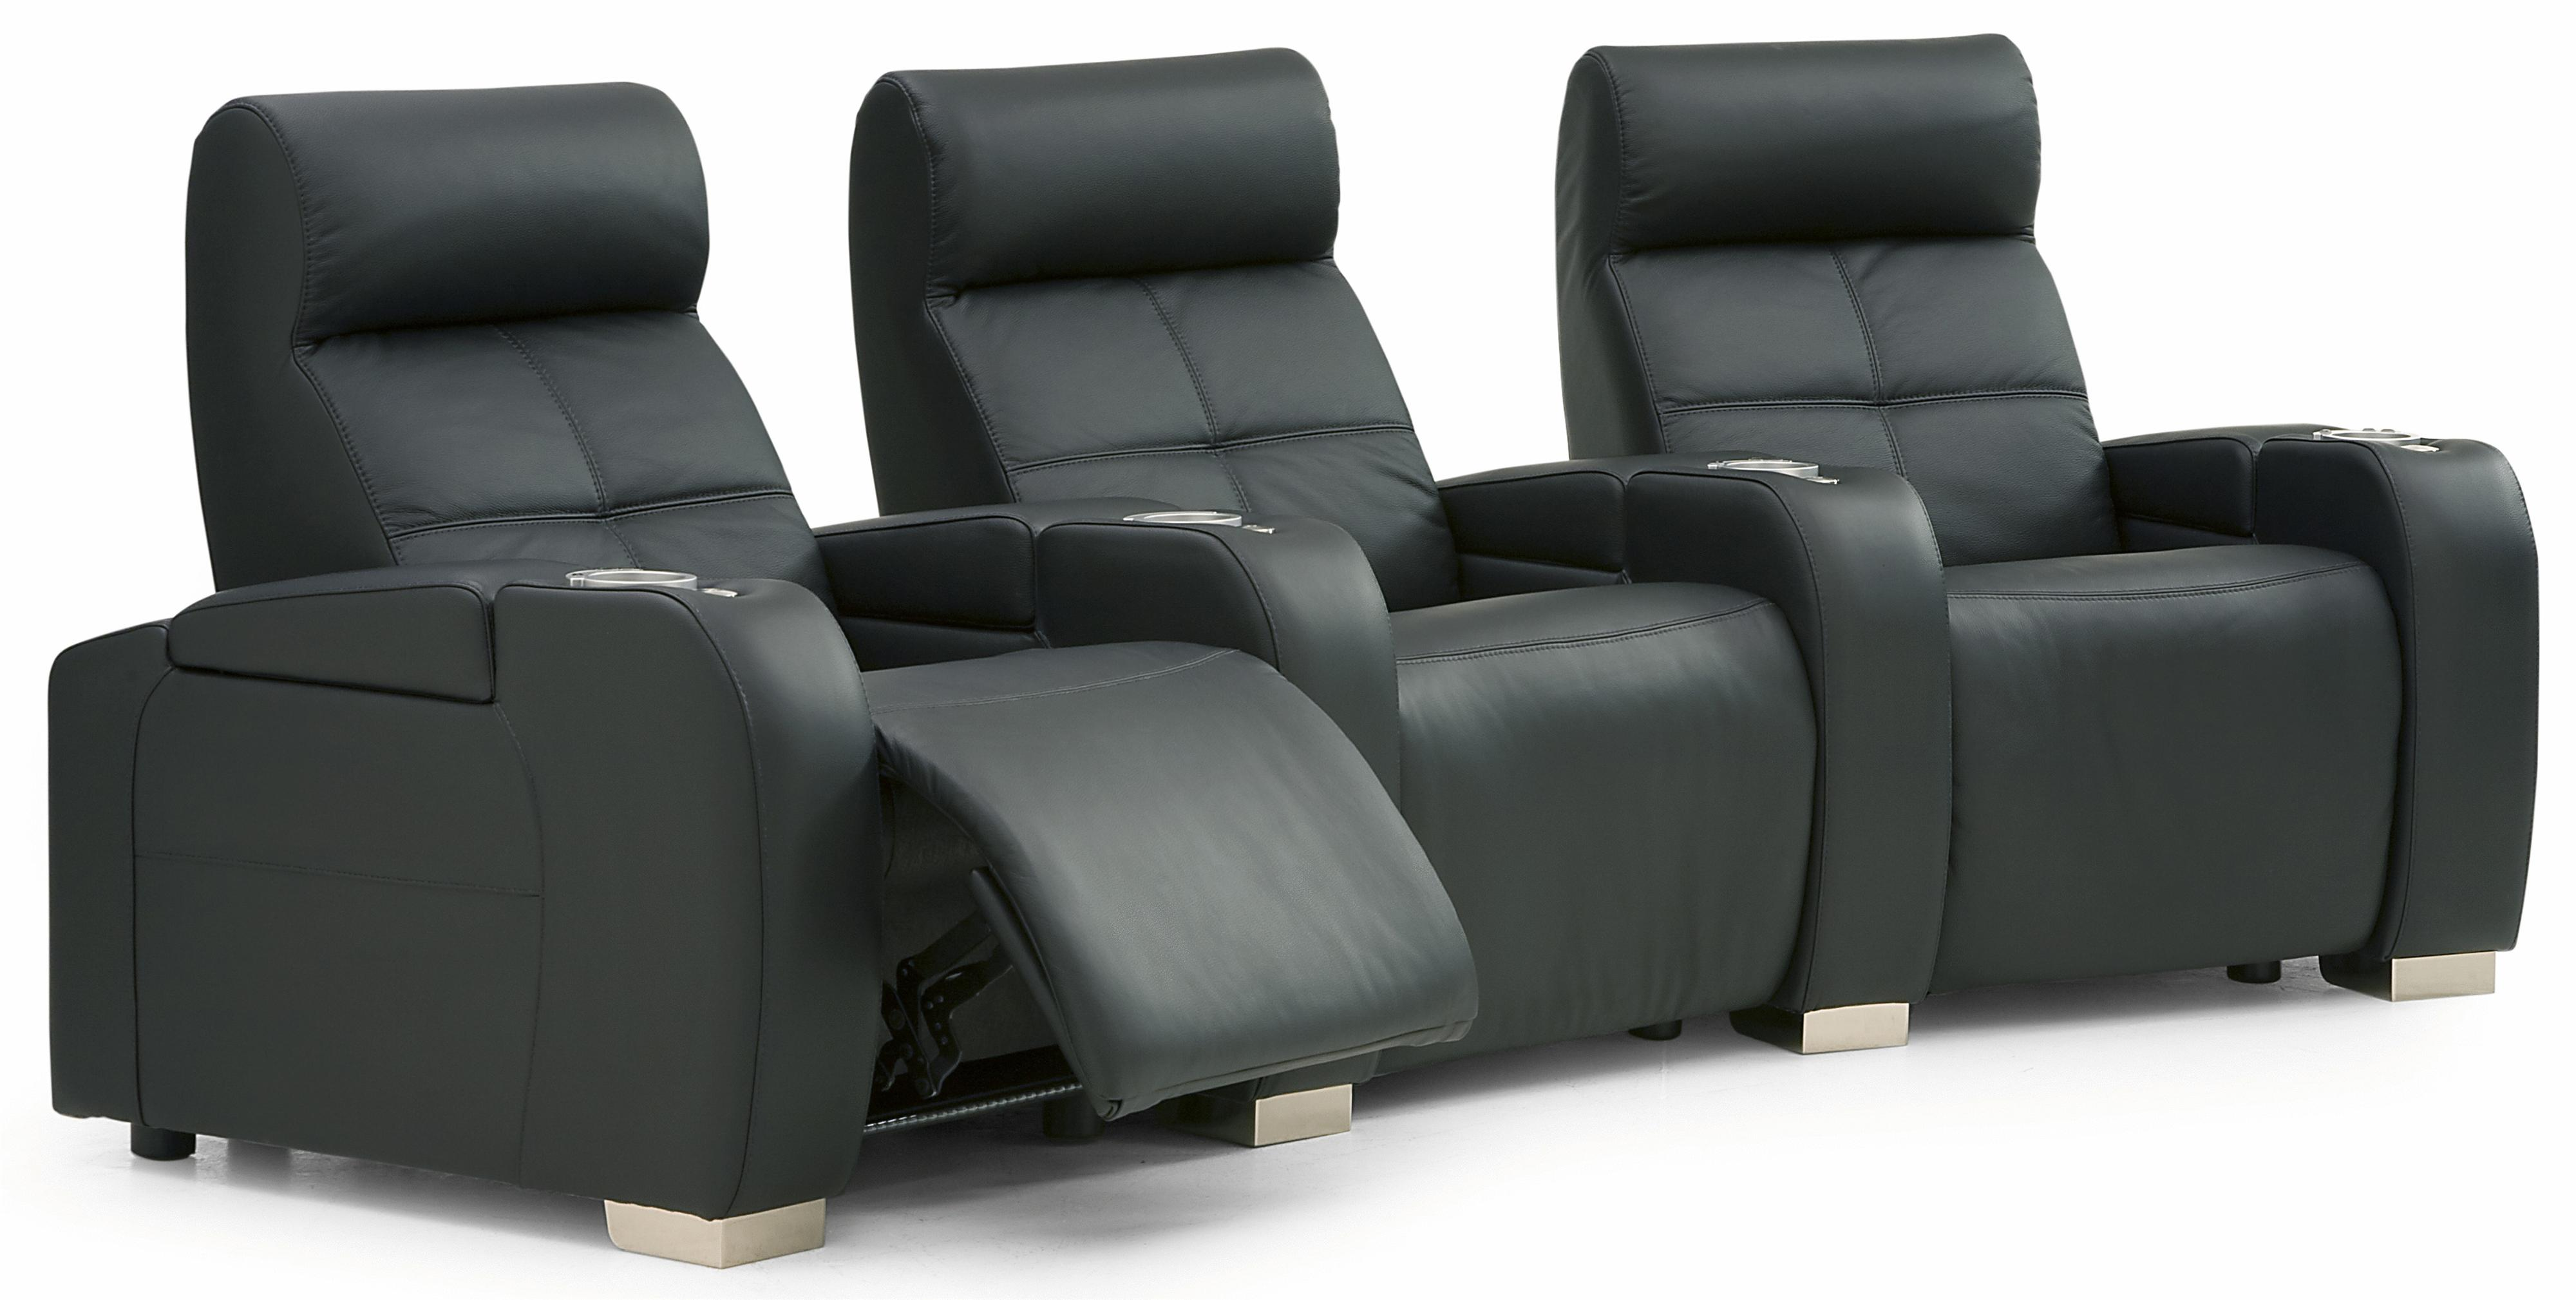 Palliser Indianapolis Manual Theater Seating - Item Number: 41955-5R+8R+6R